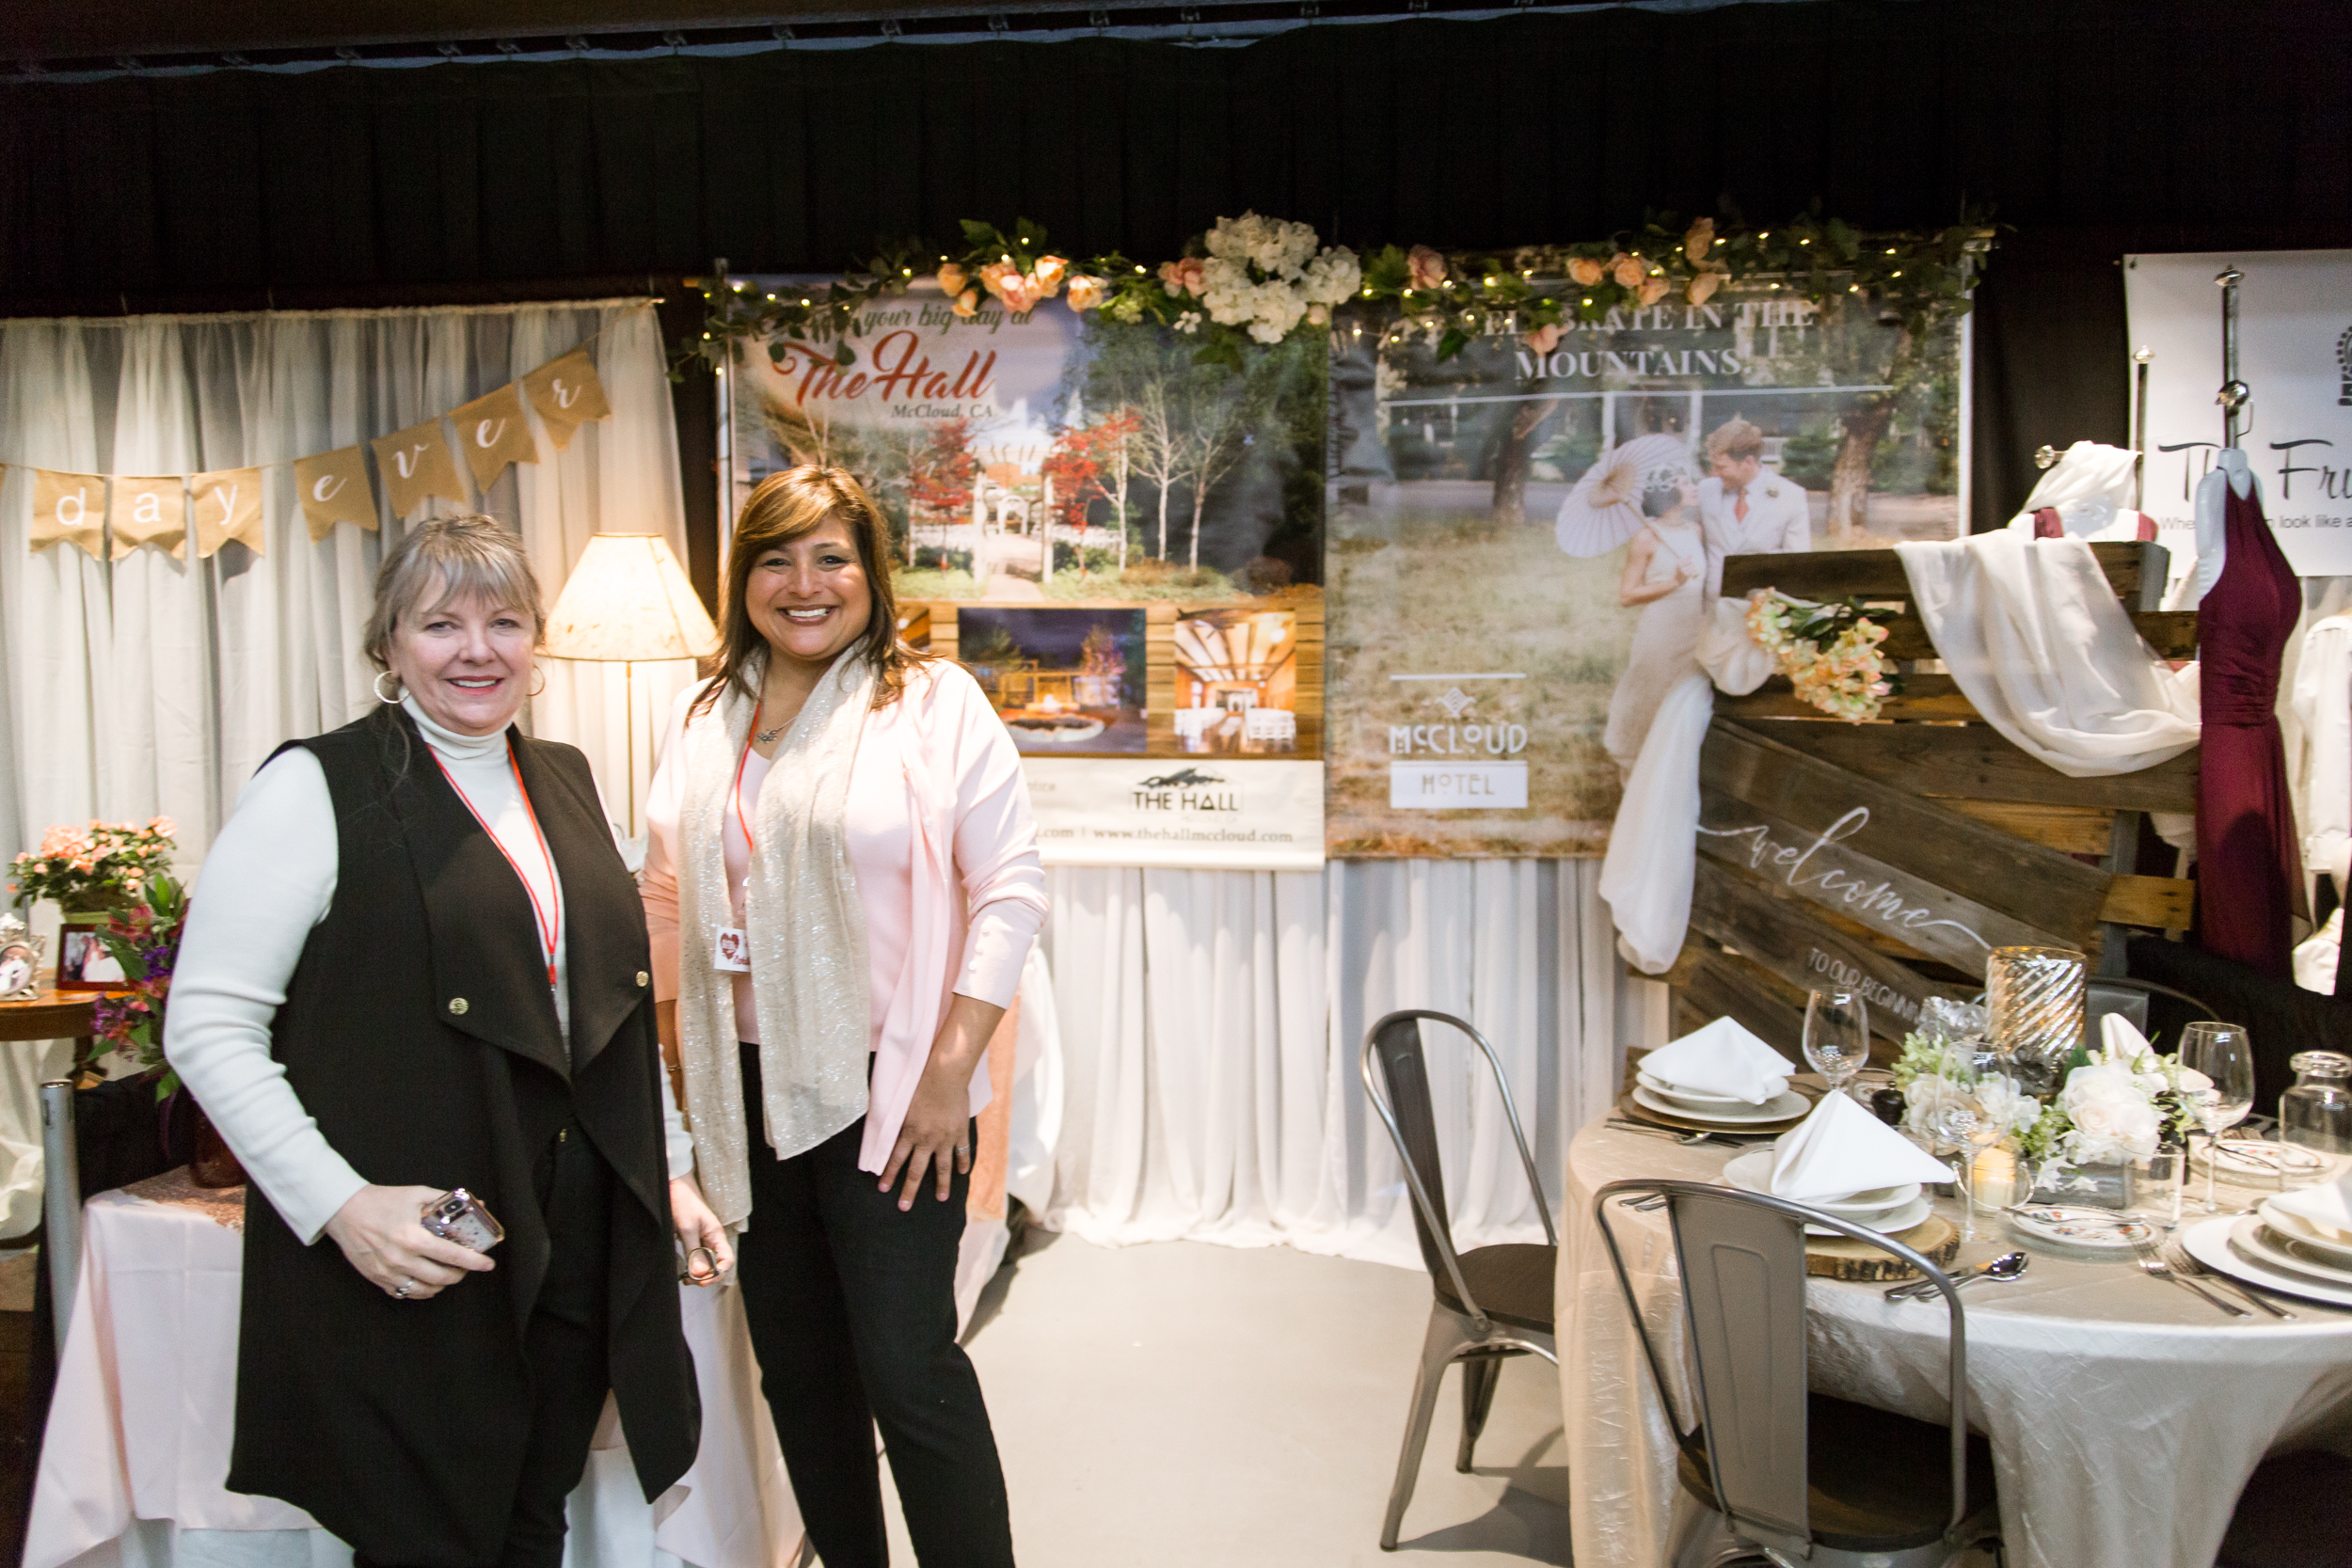 The Hall, The Mountain Wedding Event Venue in McCloud, CA Redding Bridal Show Wedding Expo